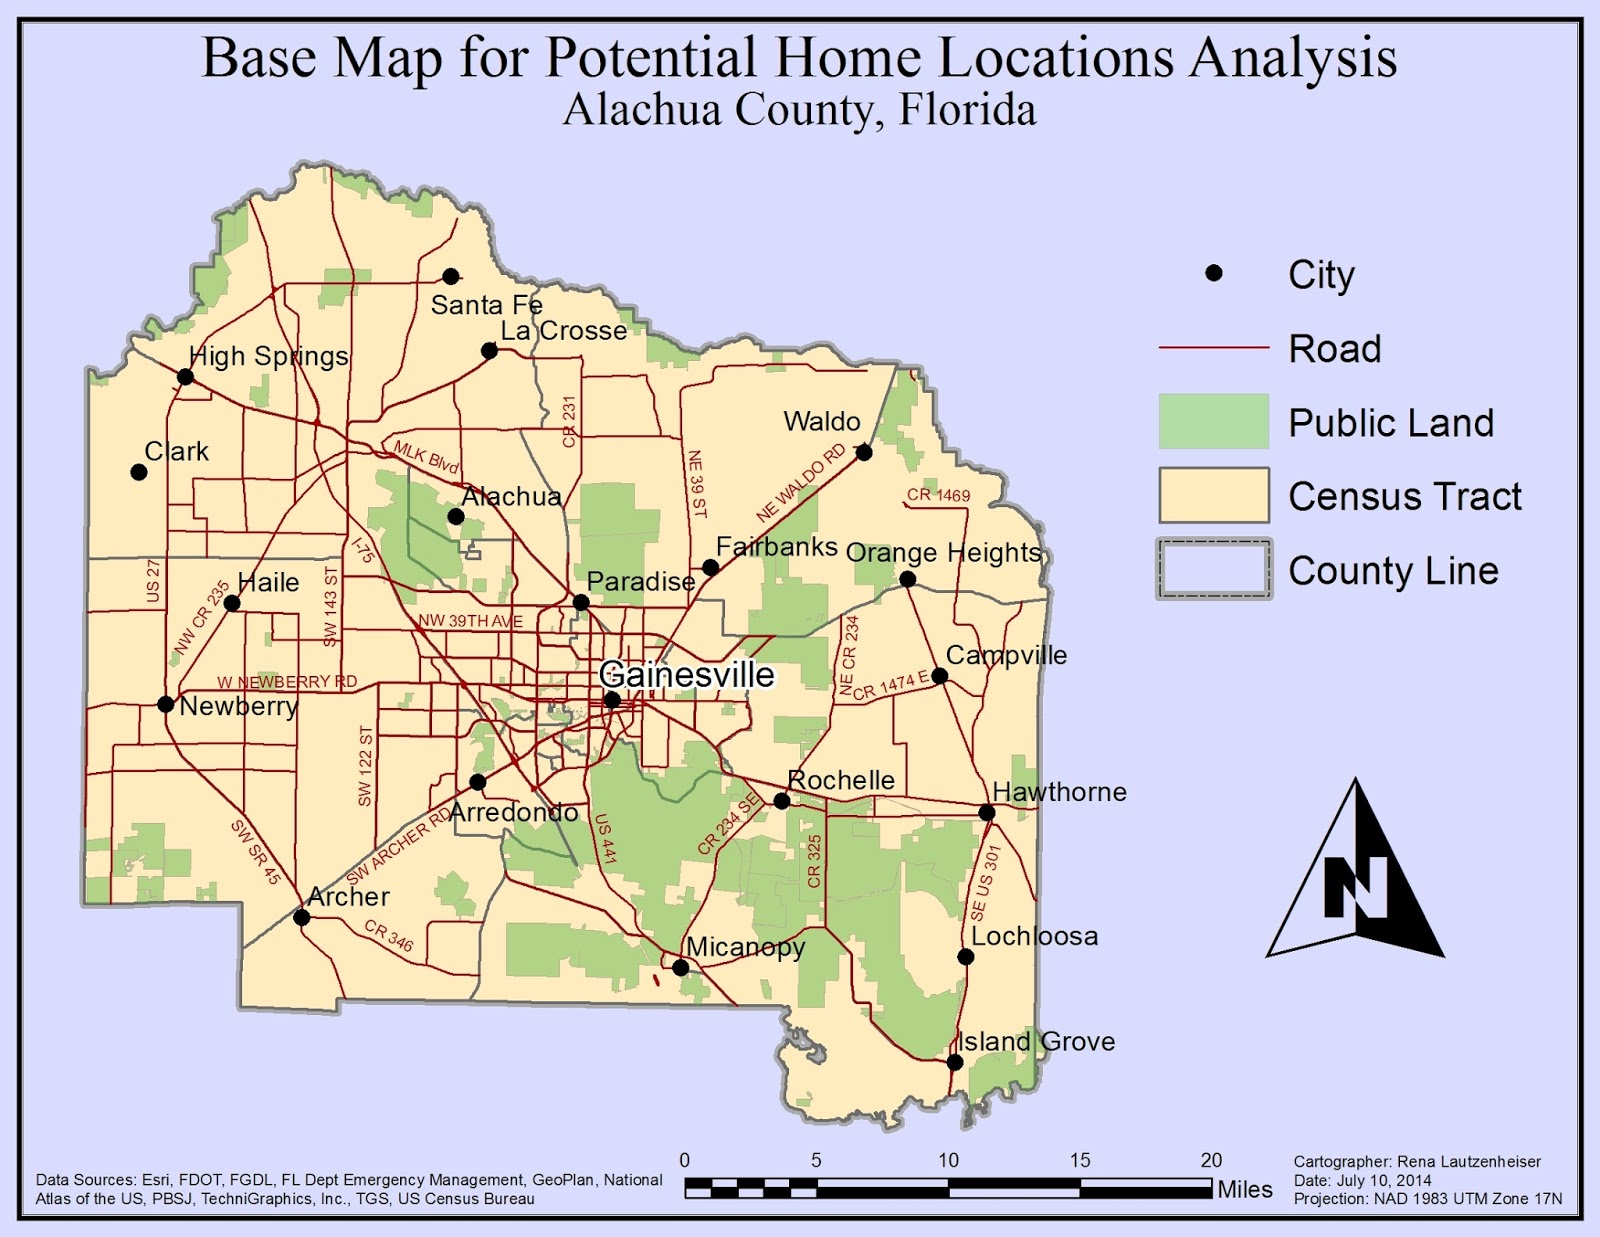 using weighted analysis is applicable not only to location selection for a residence but also to determine feasibility studies including suitability of